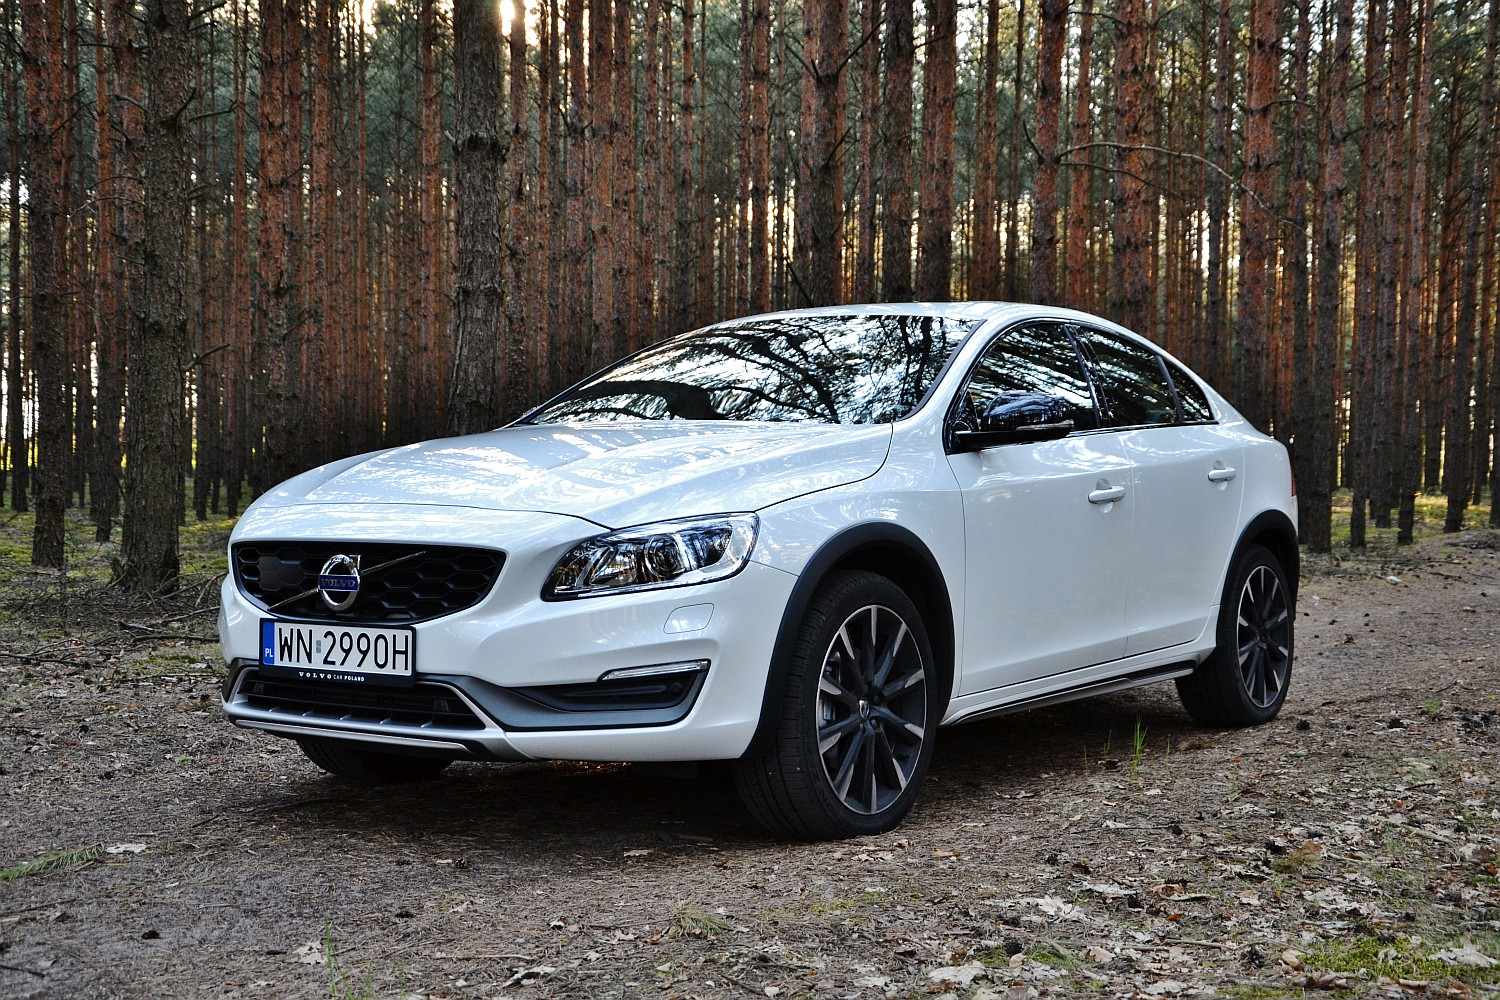 volvo s60 cross country d4 geartronic summum uterenowiony sedan namasce. Black Bedroom Furniture Sets. Home Design Ideas